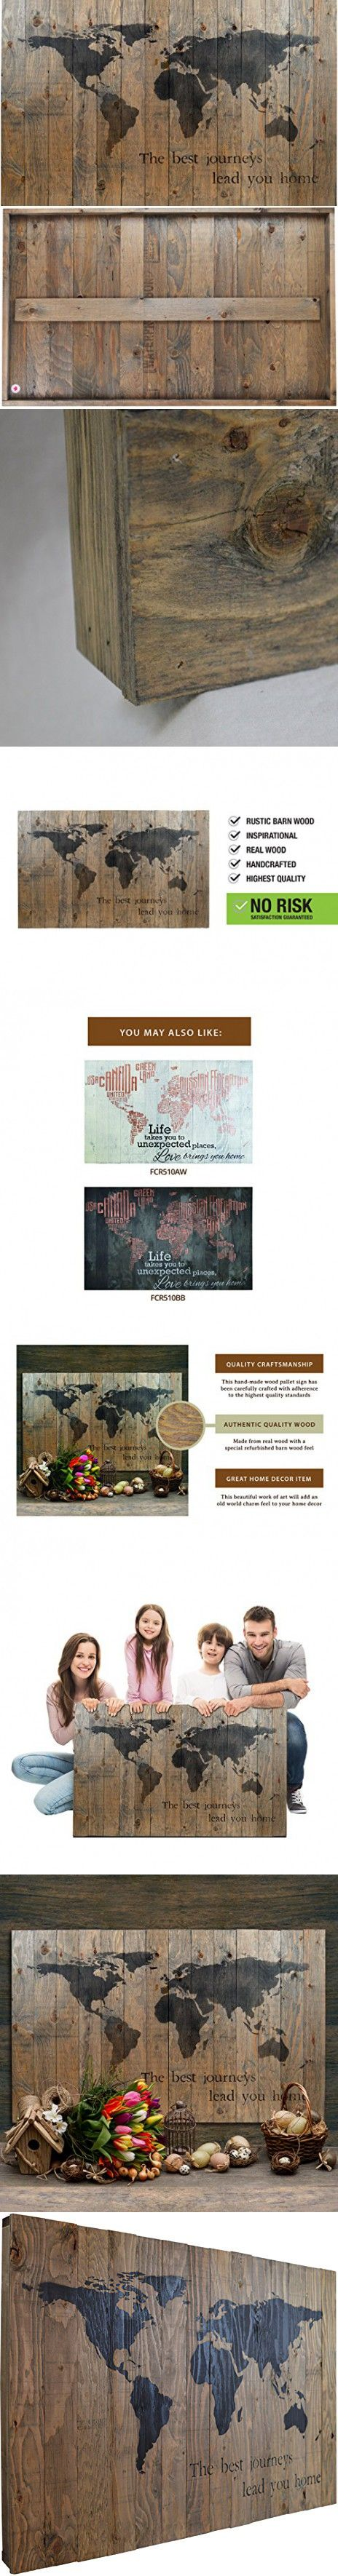 World map rustic barn wood pallet sign the best journeys lead you